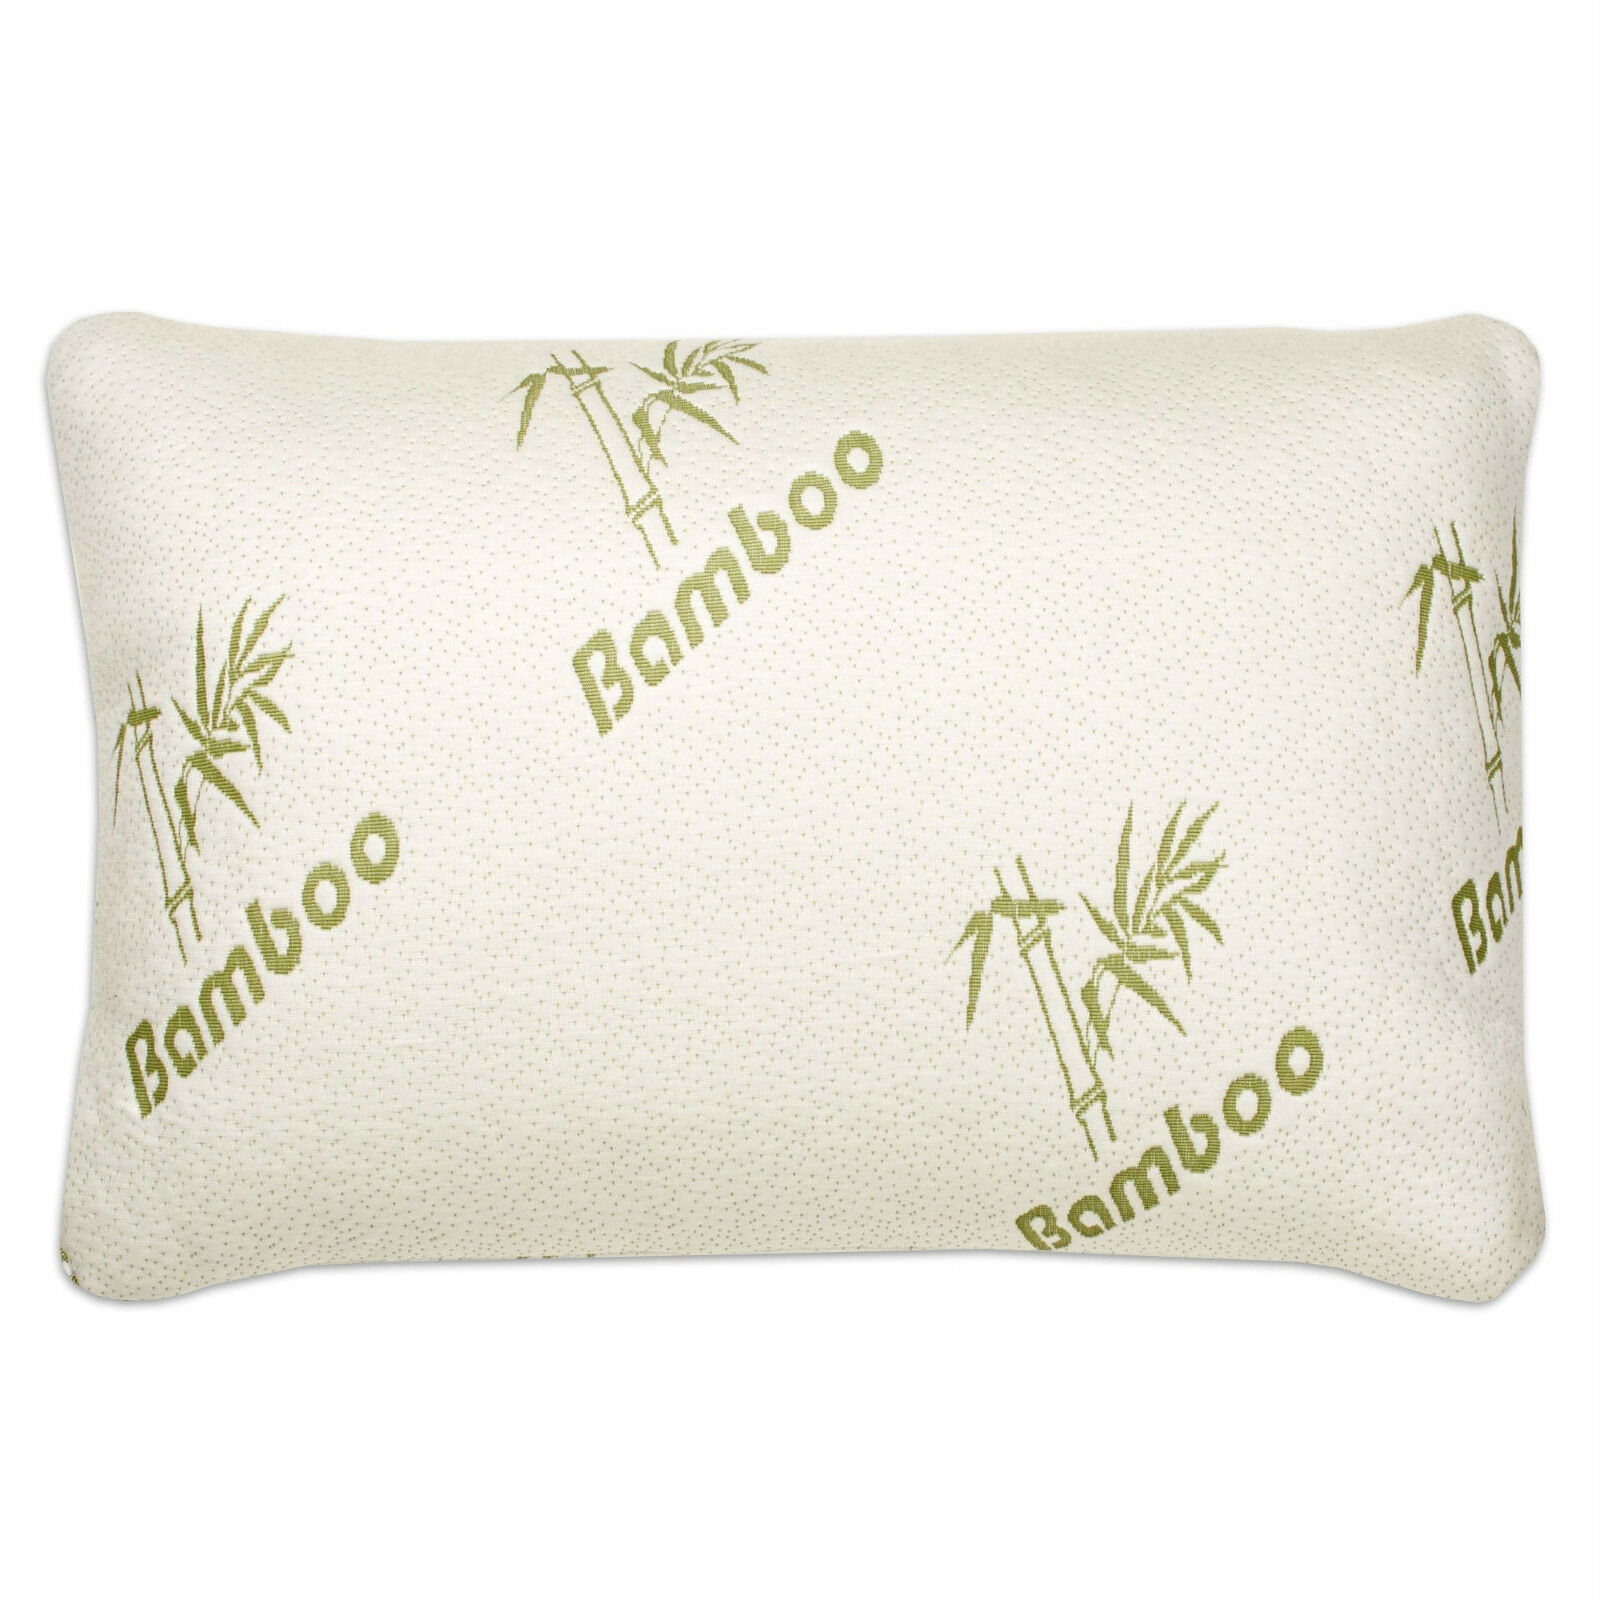 snuggle pedic fet pillow for bamboo review best product relax pillows snugle suggle